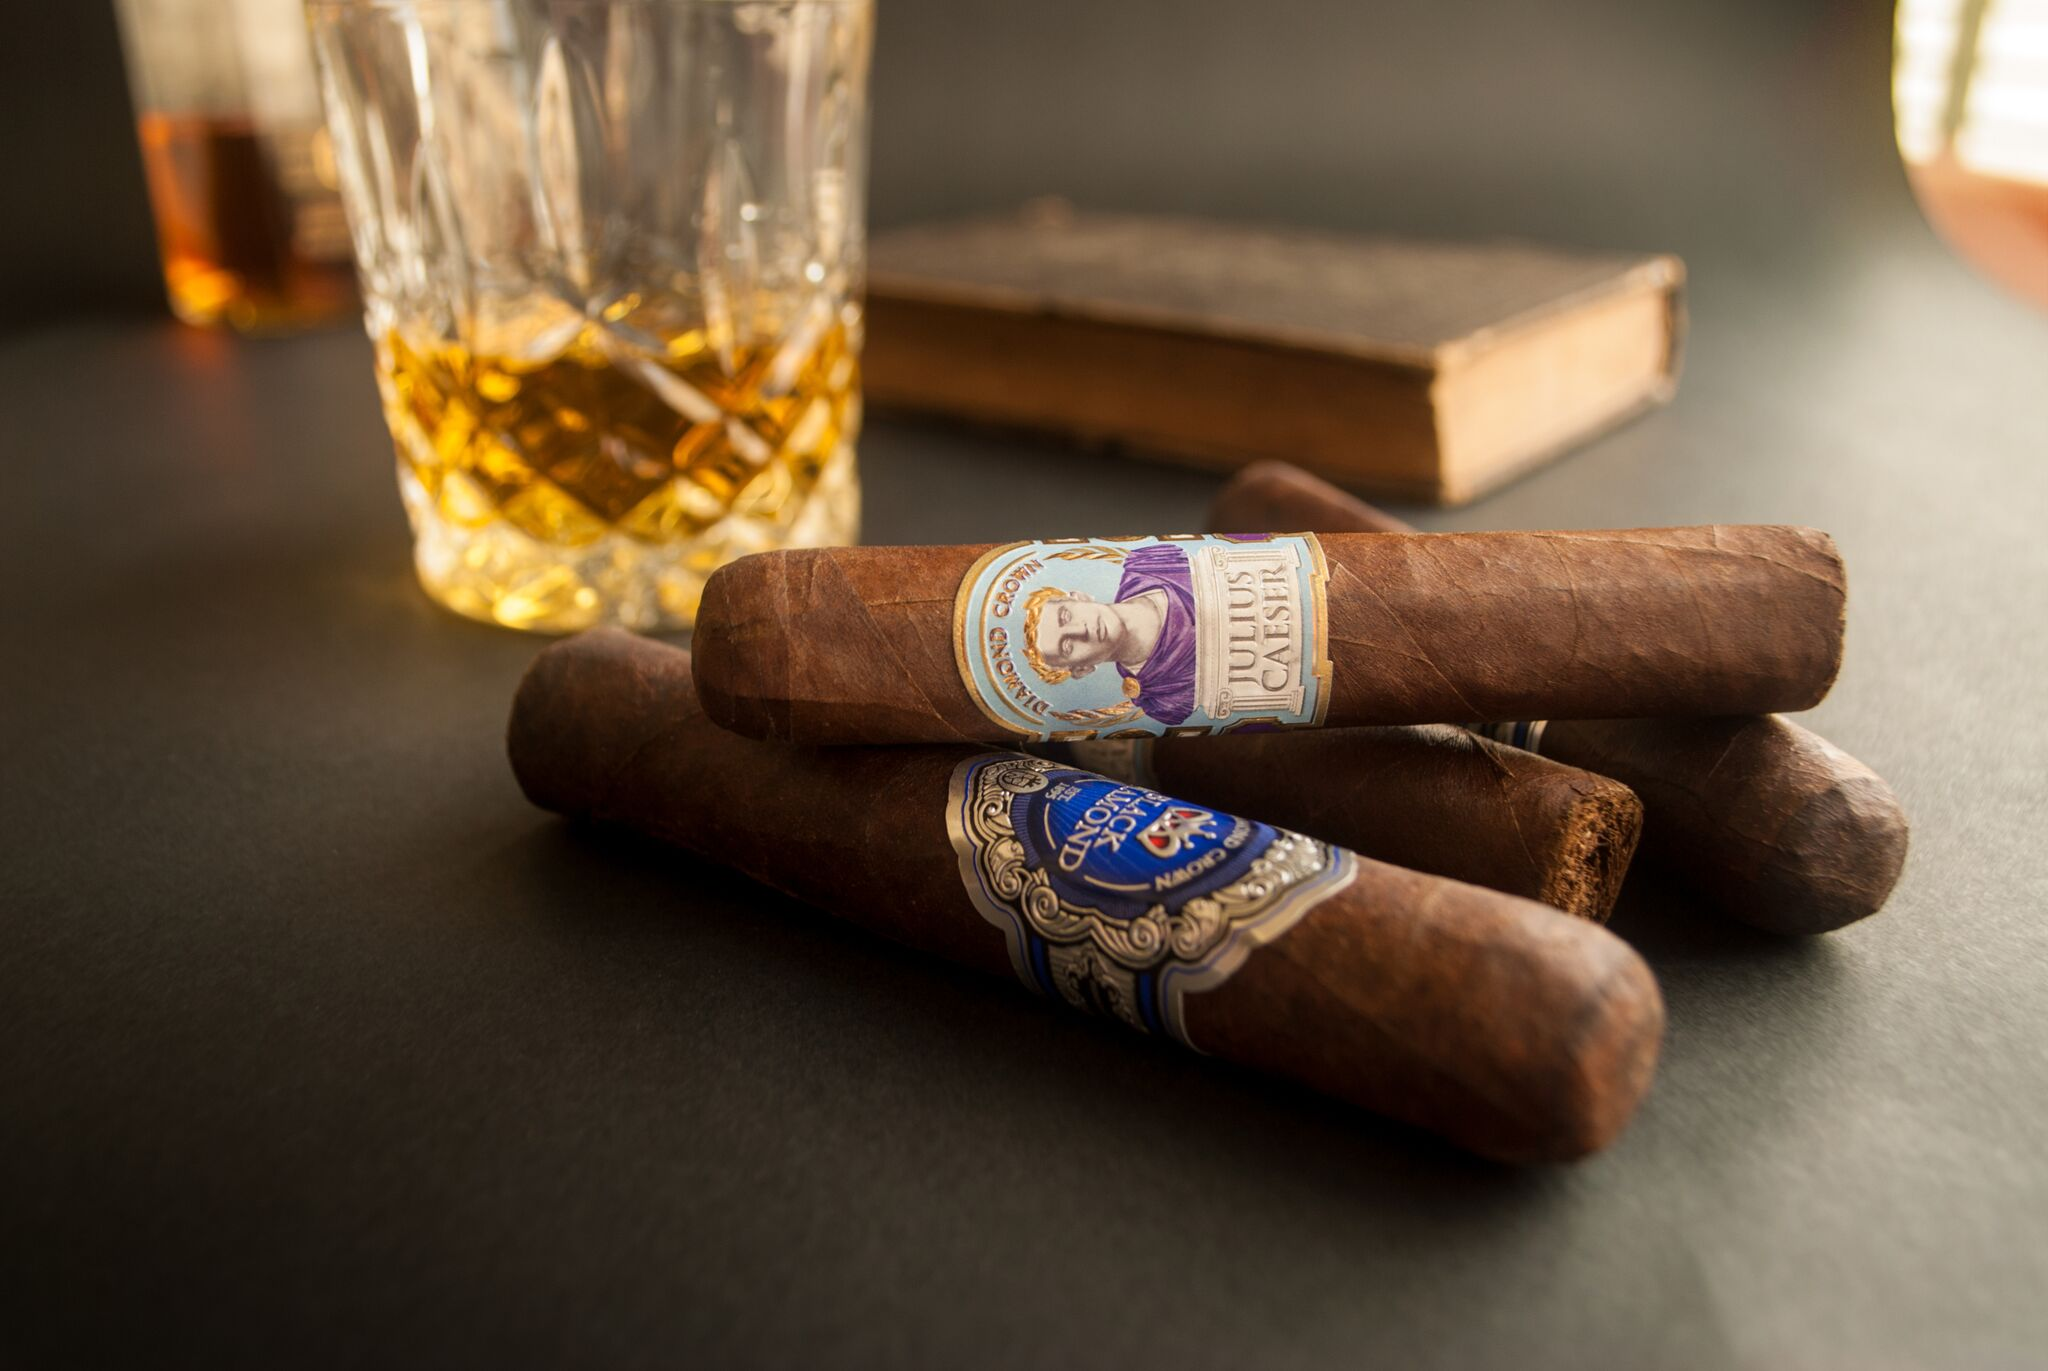 4 diamond crown cigars with glass of whiskey